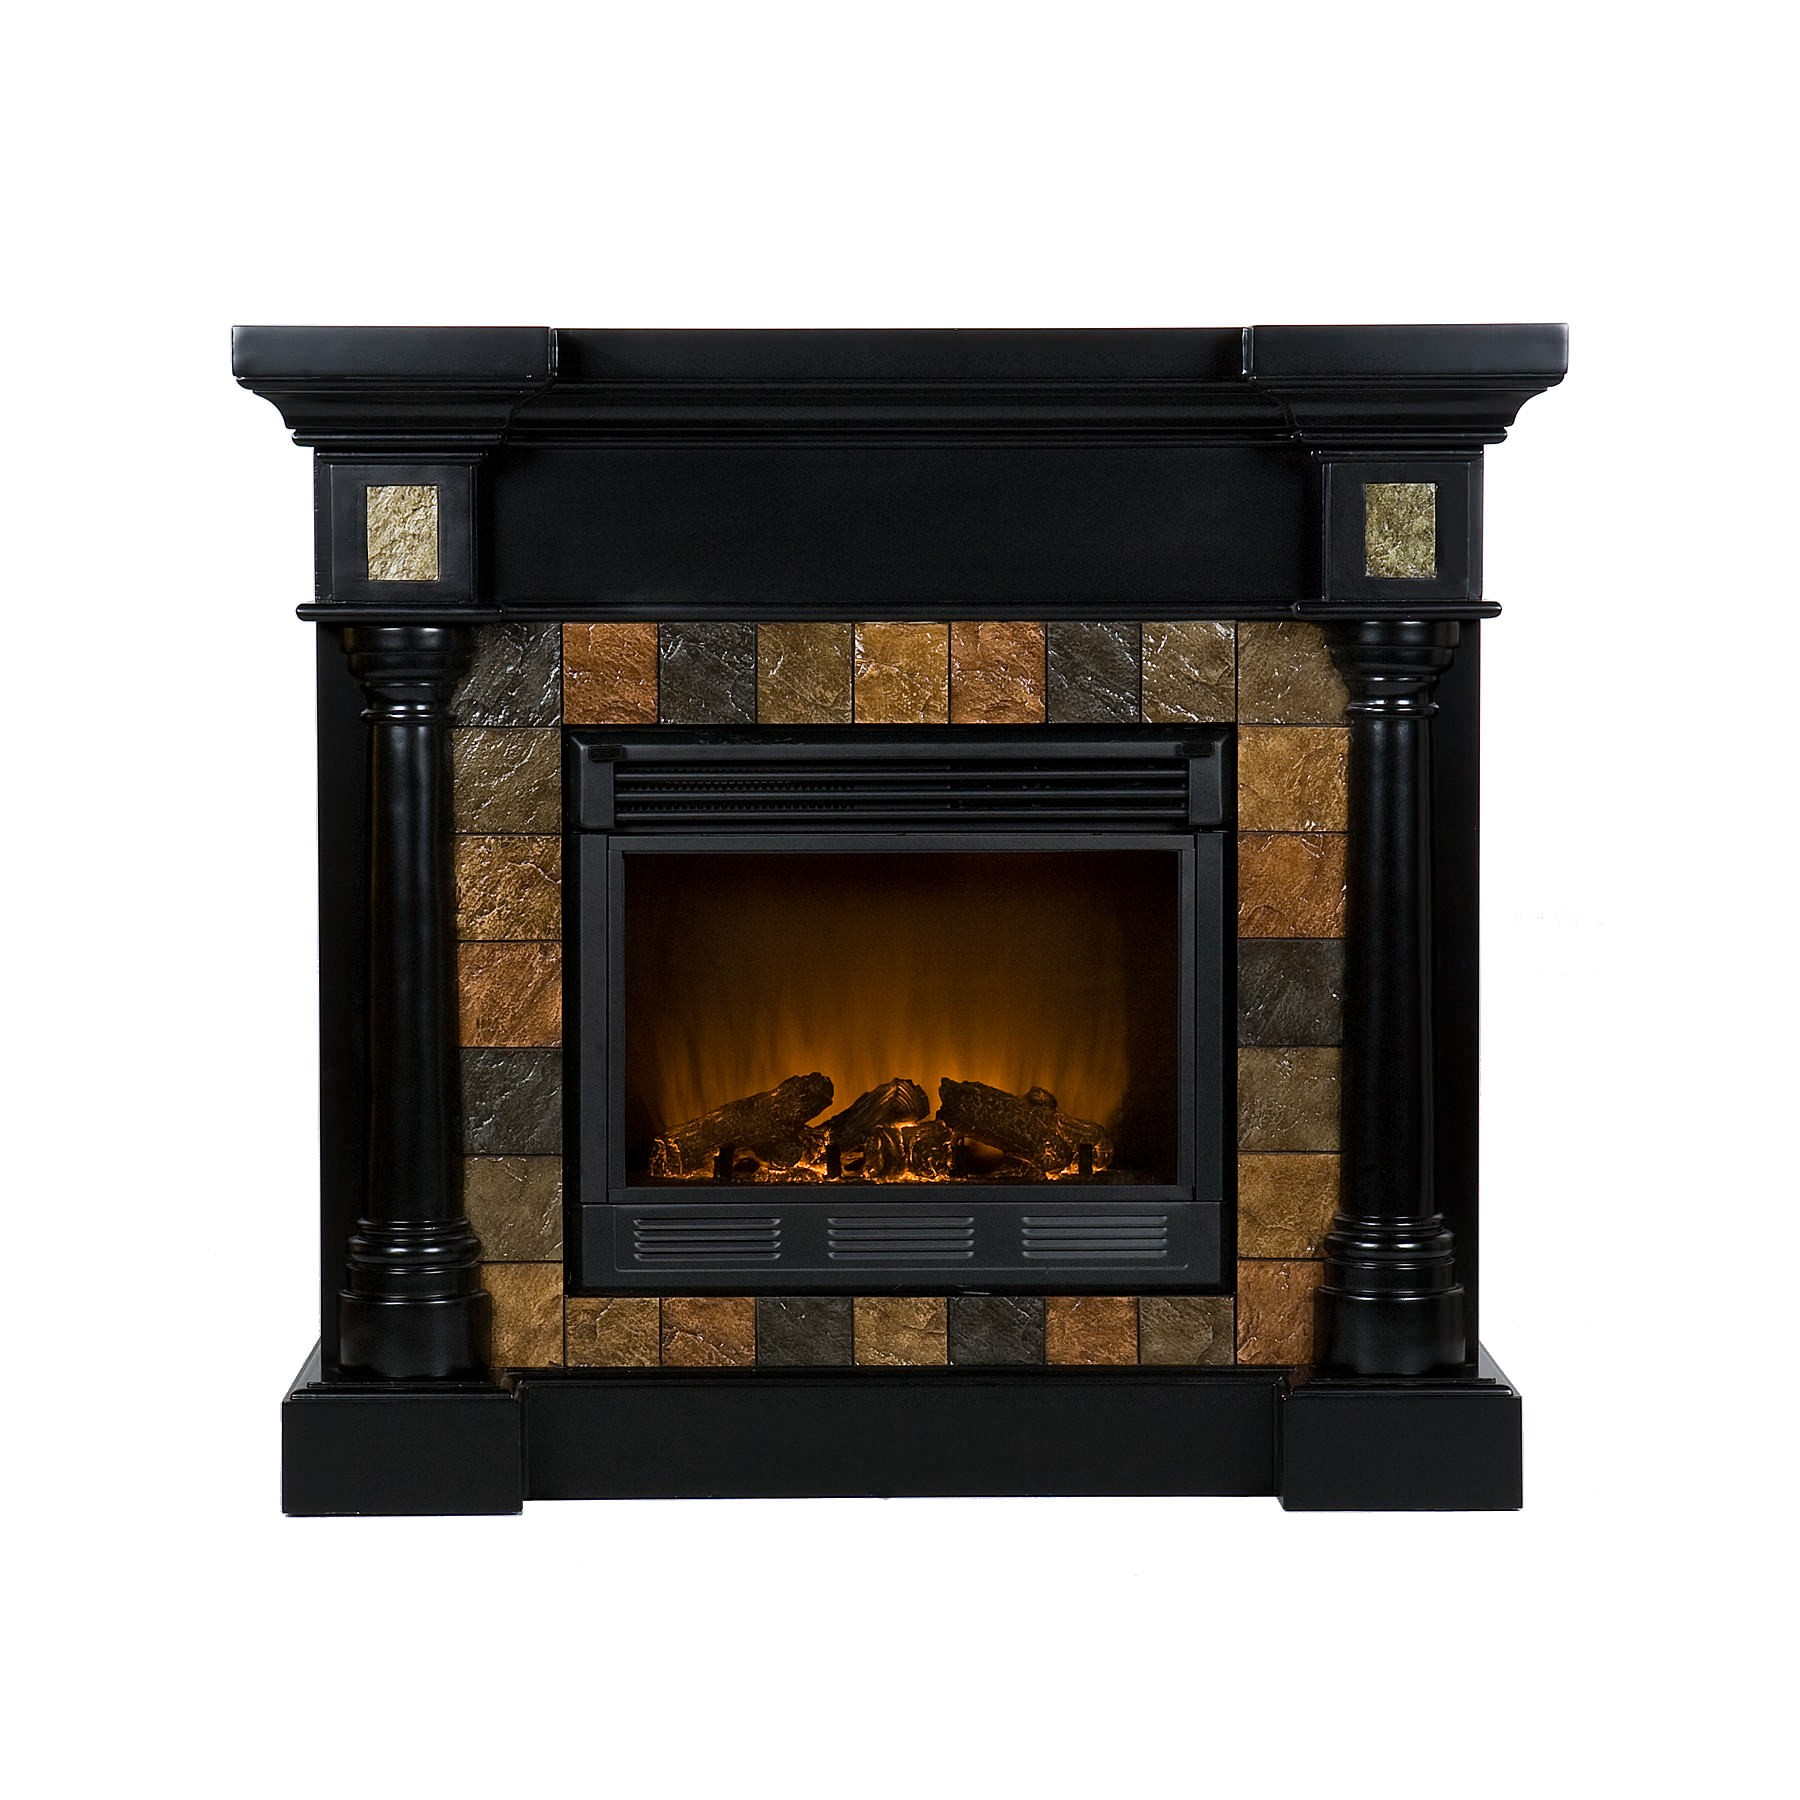 Southern Enterprises 37-251-023-0-01 Carrington Faux Slate Convertible Electric Fireplace - Black